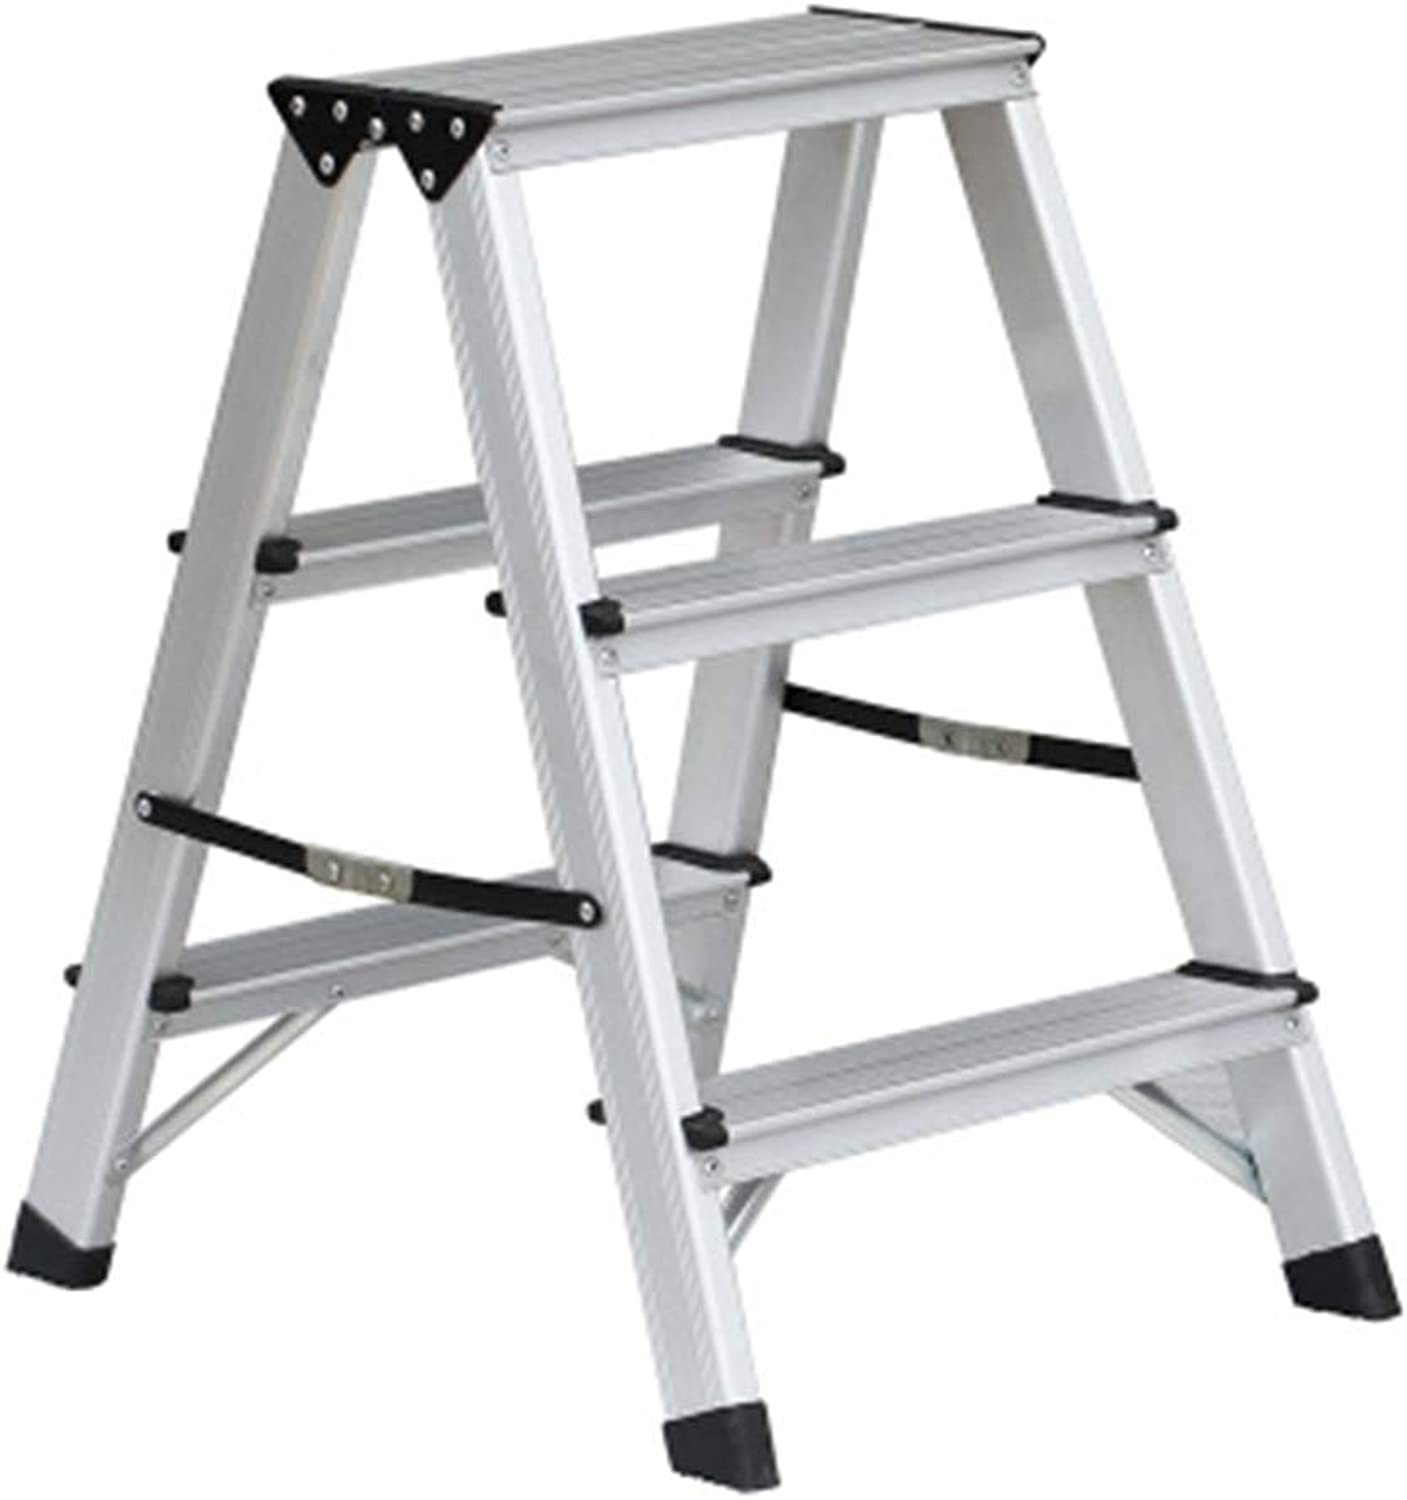 Stools Ladder Stool Home Folding Ladder Stool Thick Two-Step Three-Step Ladder Dual-use Small Ladder Chair Climbing Ladder (color   Silver, Size   39.5  59cm)